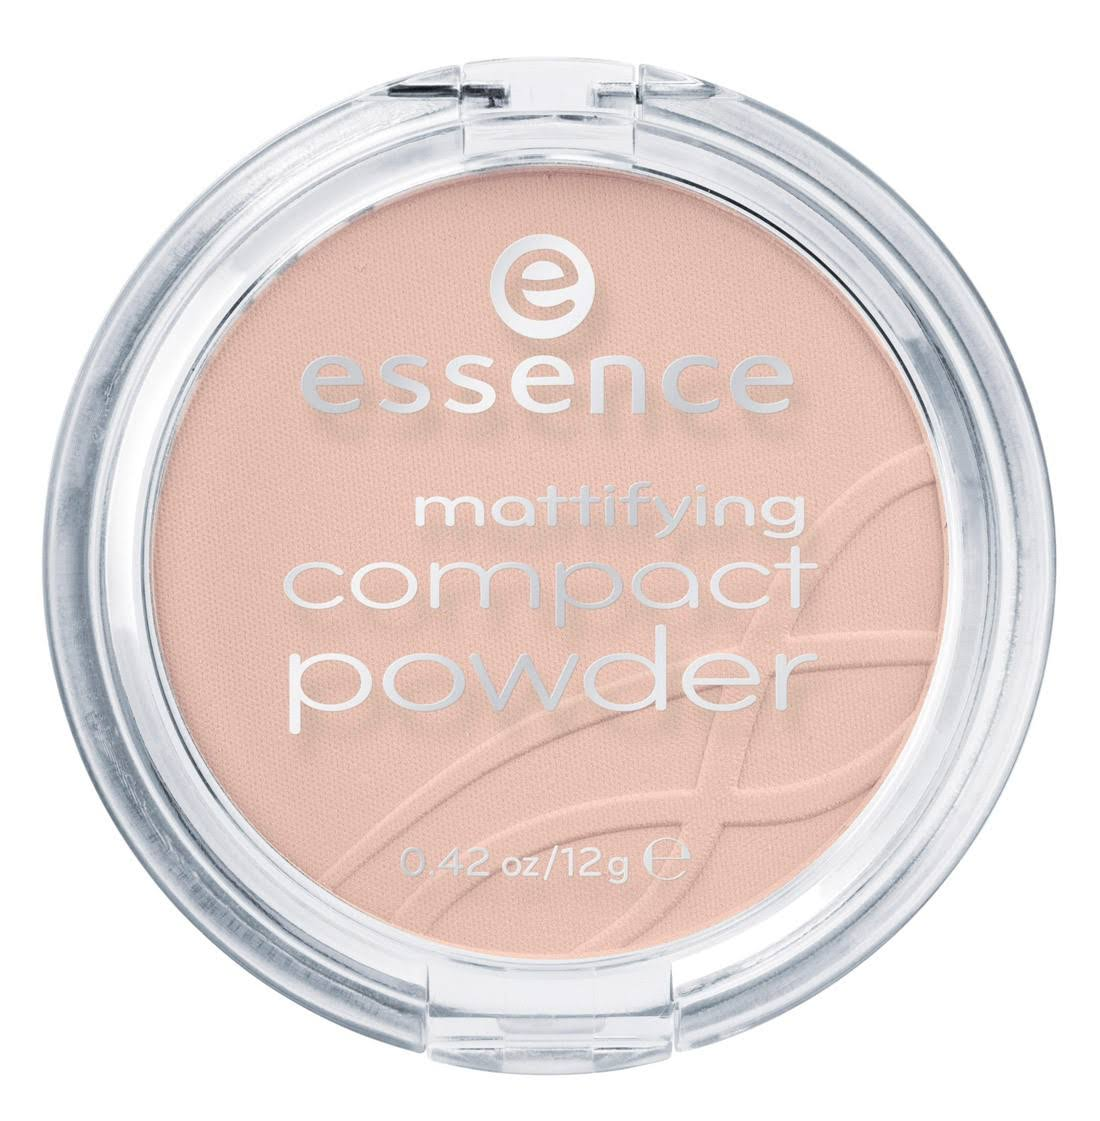 Essence Mattifying Compact Powder 02 Soft Beige